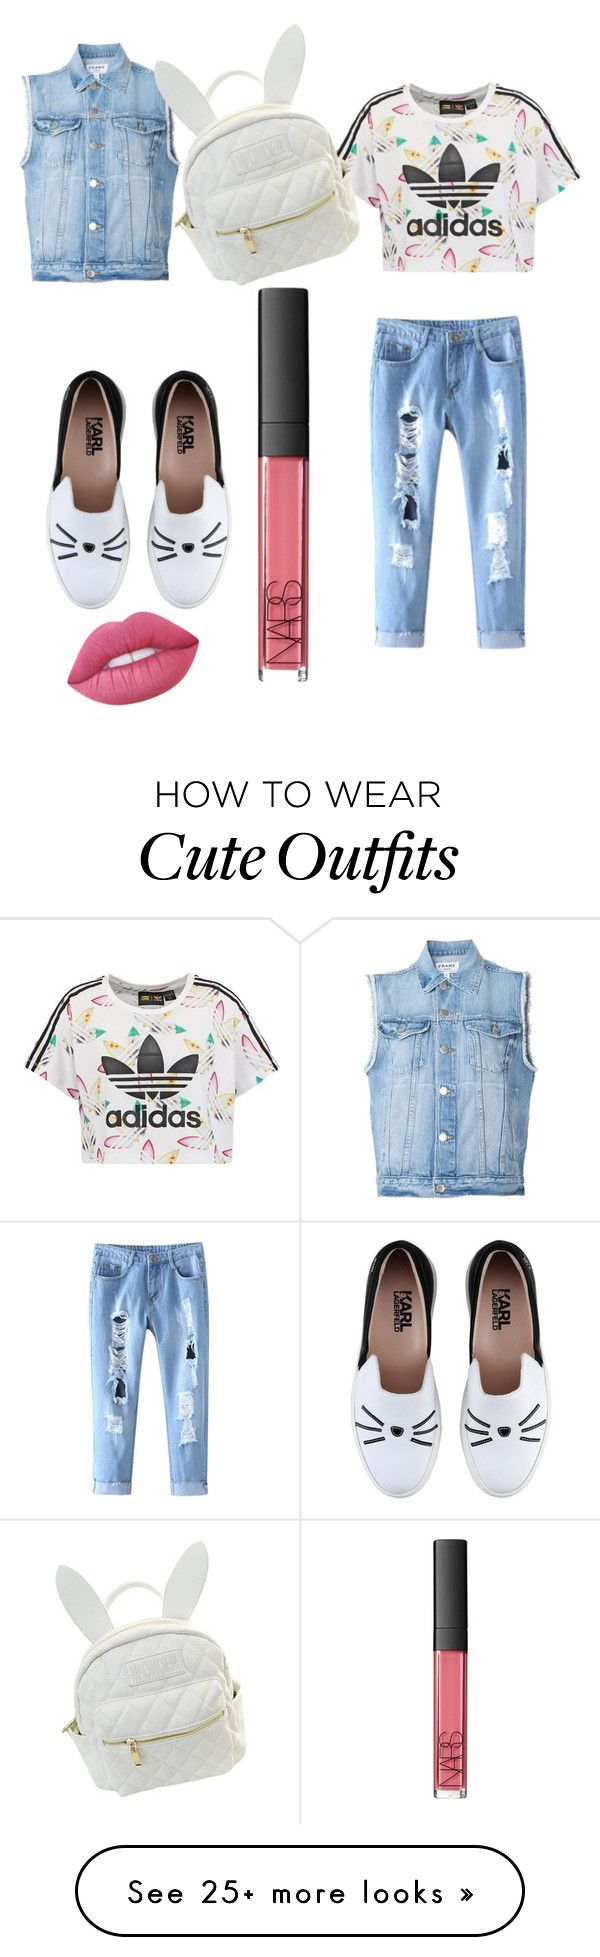 """My First Polyvore Outfit"" by mcifgbhg on Polyvore featuring adidas Originals, Frame Denim, Karl Lagerfeld, Lime Crime, NARS Cosmetics and cutekawaii"